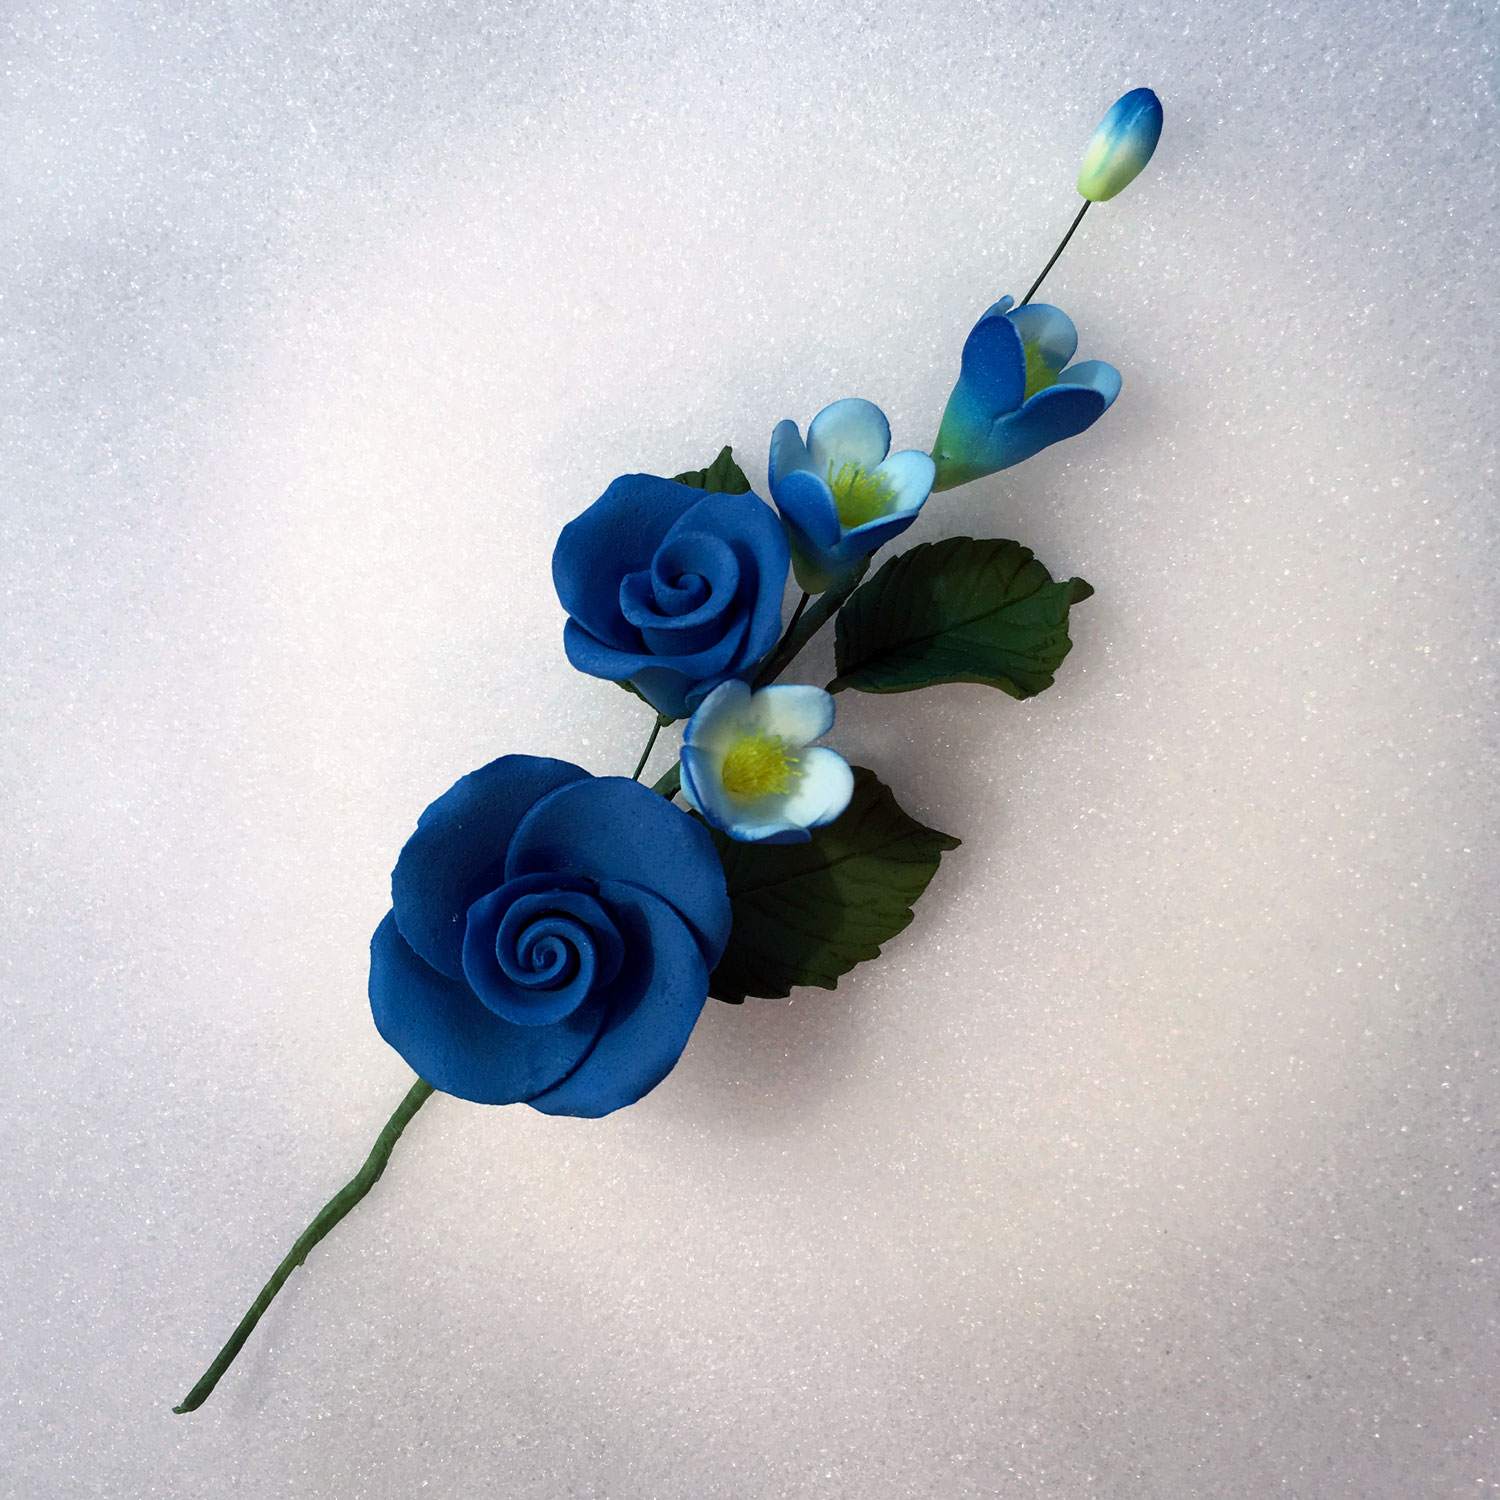 Royal Blue Rose and Apple Blossom Spray